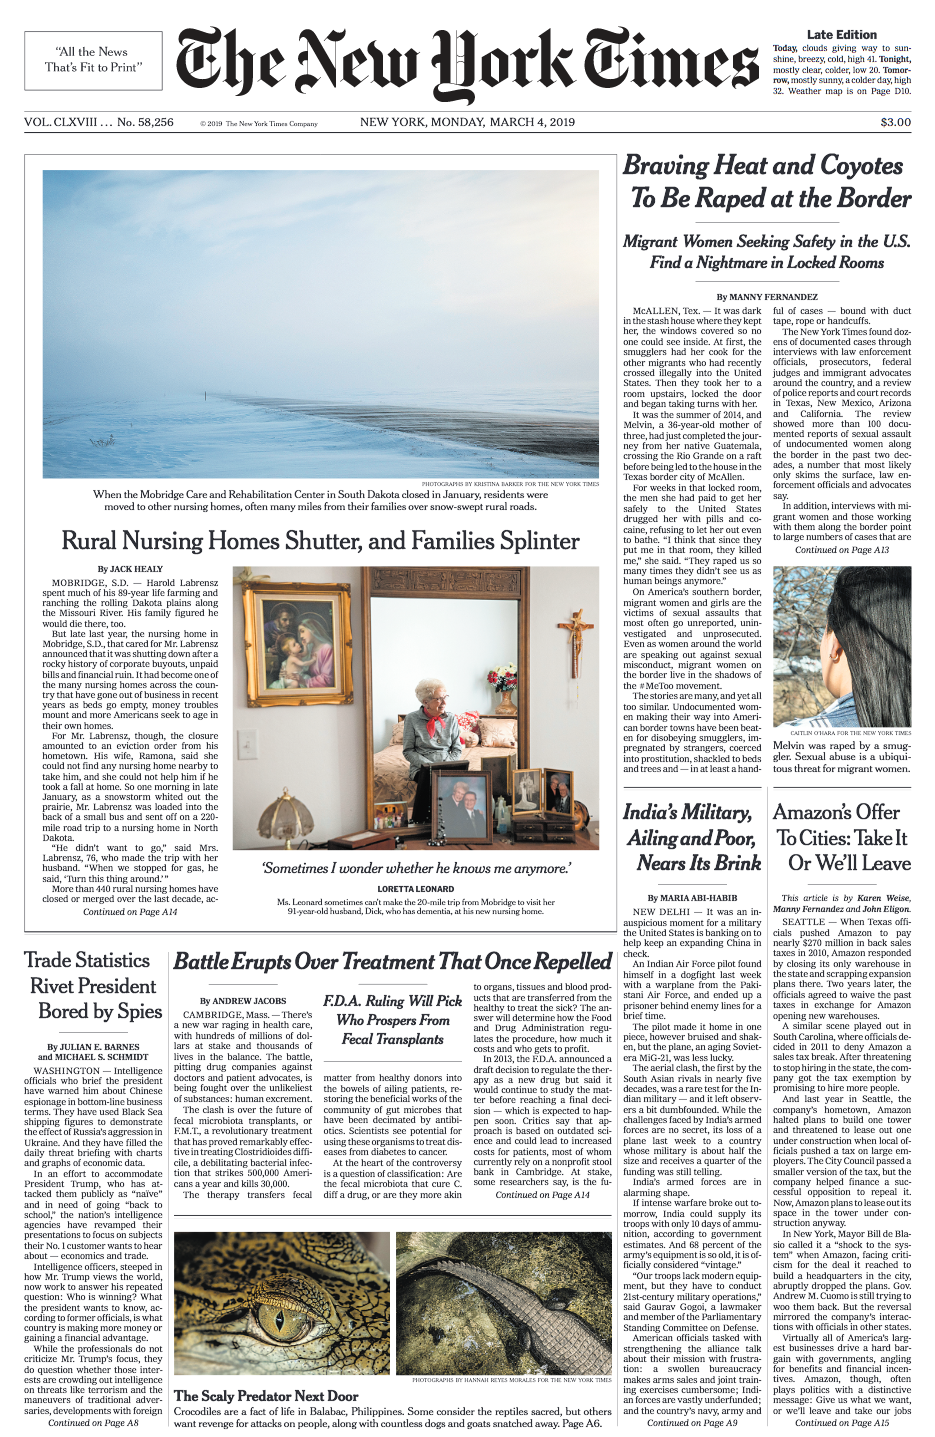 NYT_FrontPage_030419.png